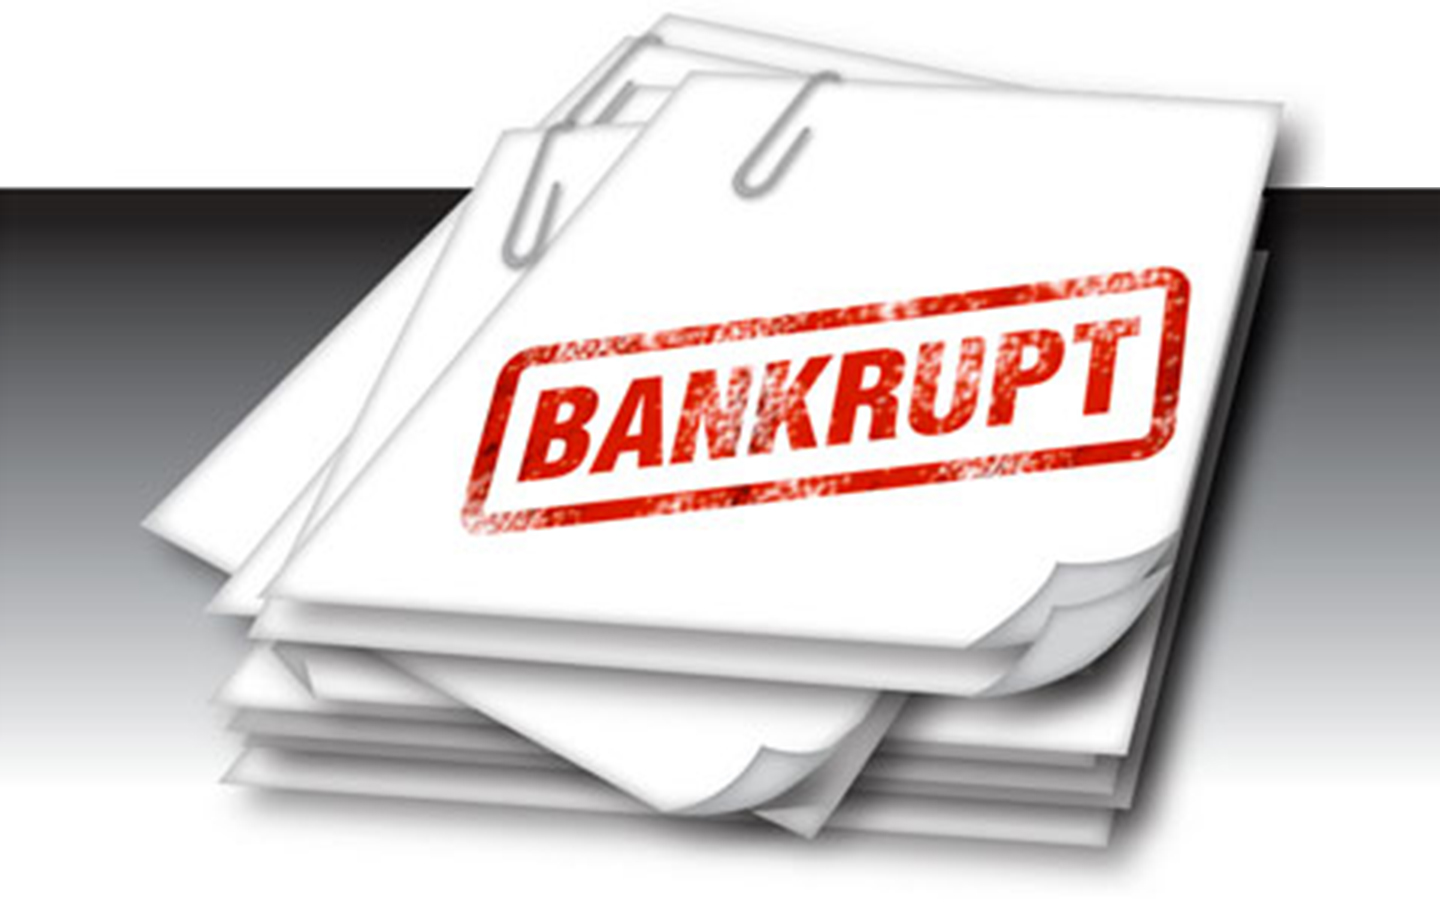 bankruptcy case Get out of debt – take the first step today you don't have to fight this battle alone if you're overwhelmed by debt and can't find a way out, it's time to talk with a bankruptcy attorney.